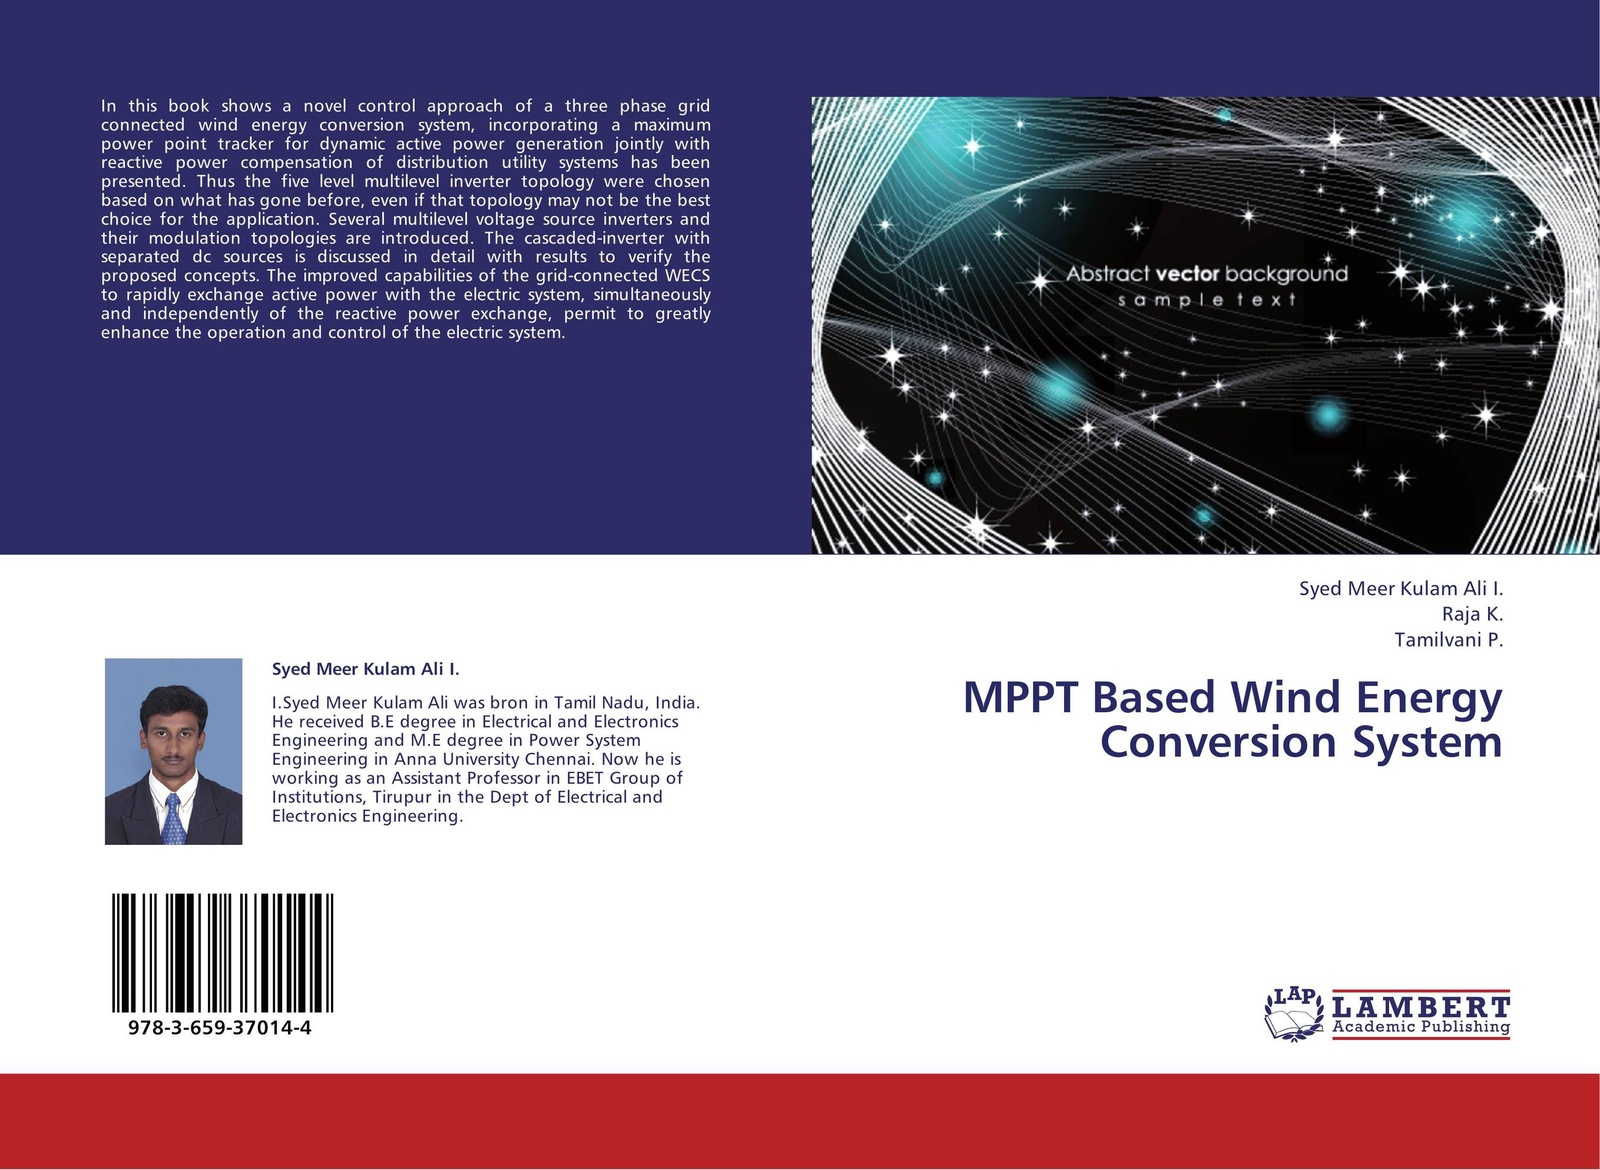 Syed Meer Kulam Ali I.,Raja K. and Tamilvani P. MPPT Based Wind Energy Conversion System jumaah raihan sulaiman new technique for maximum power point tracker on photovoltaic systems